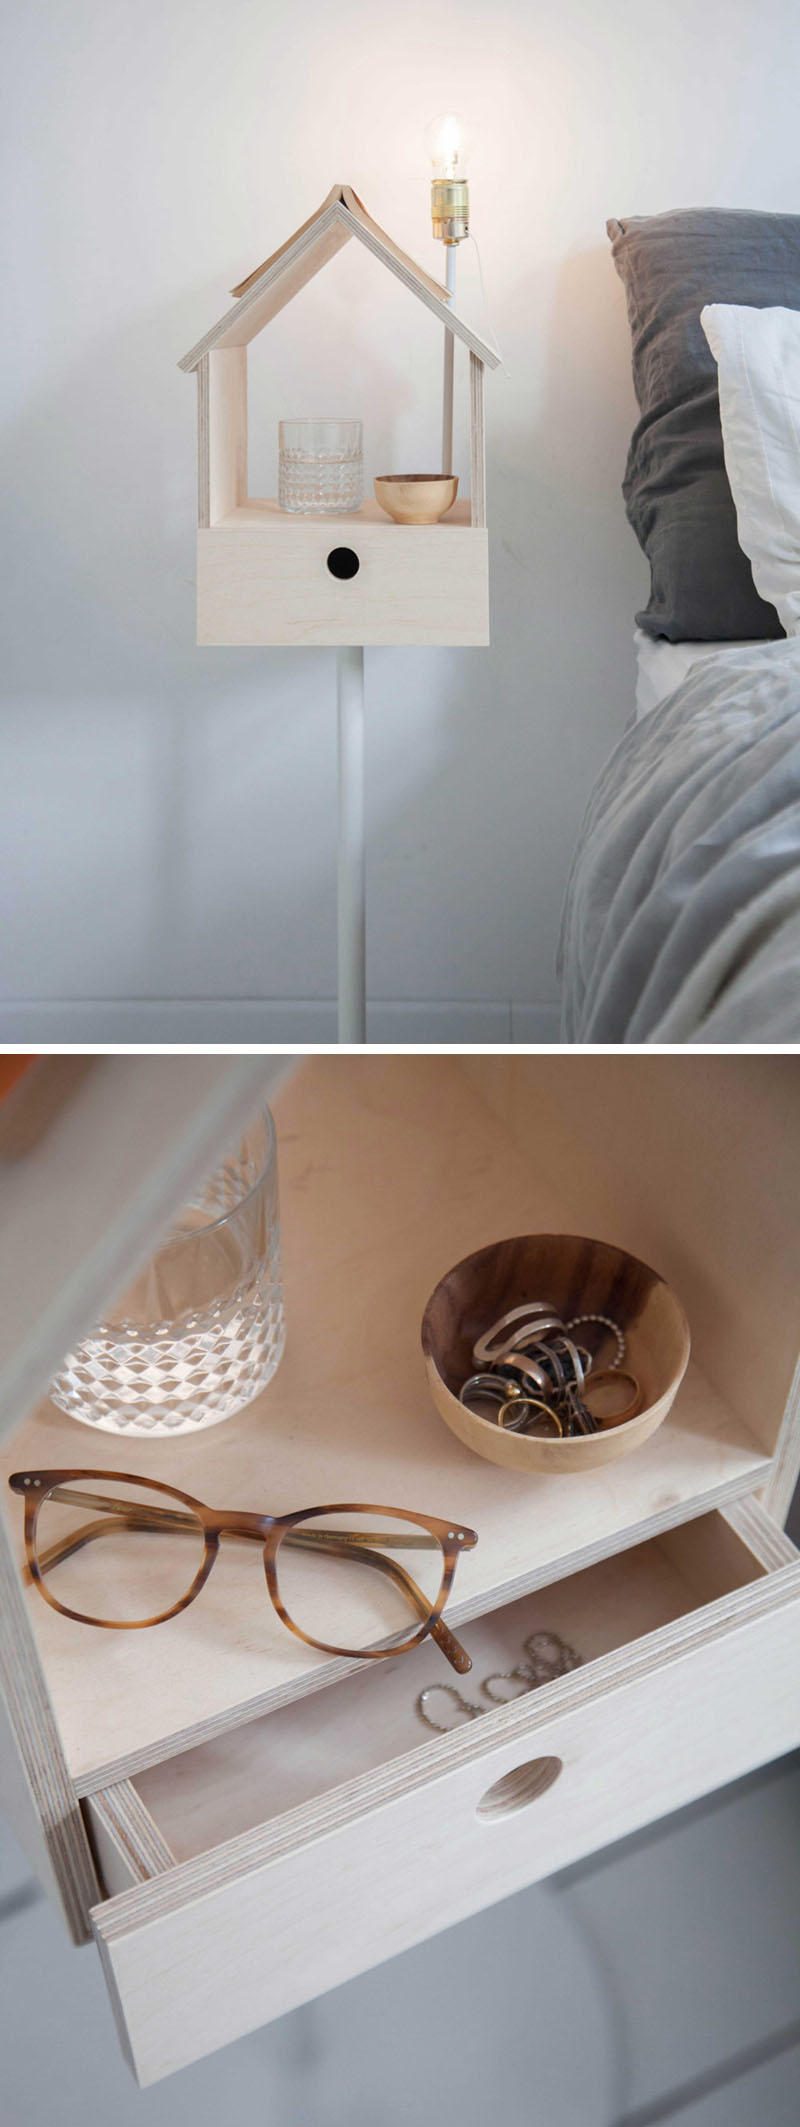 bedside-table-occasional-table-060217-1229-03